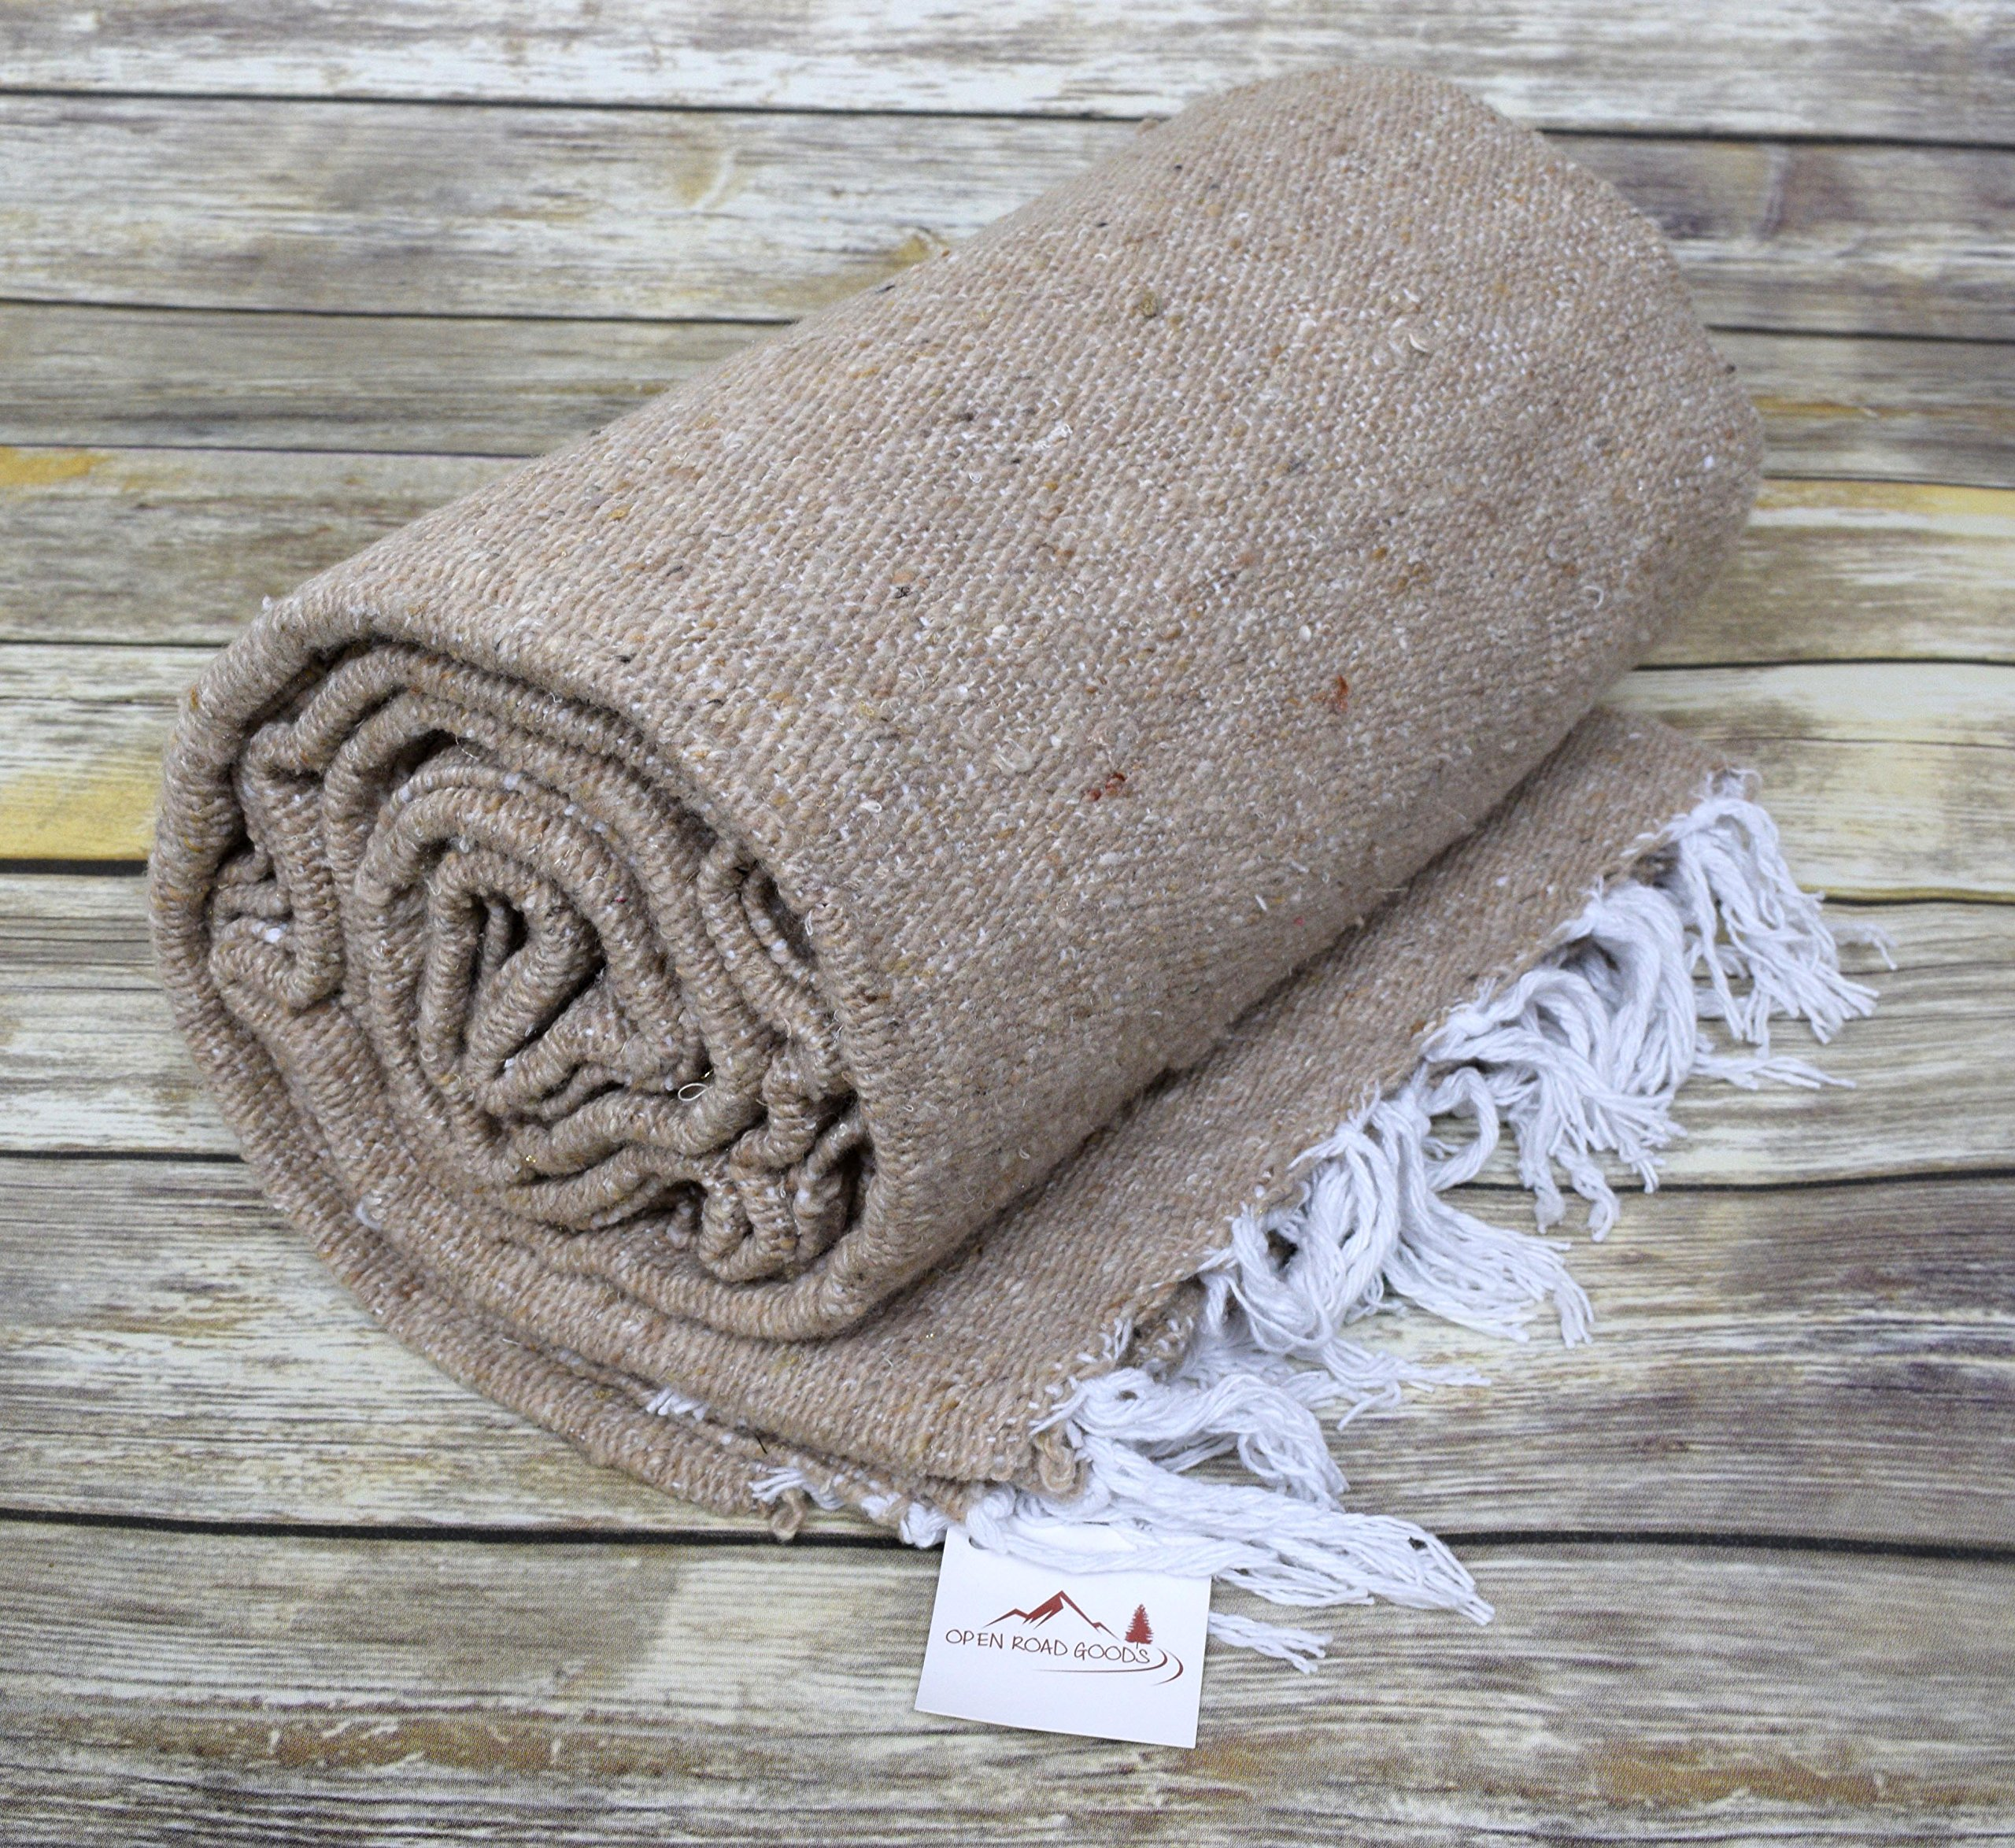 Open Road Goods Handmade Tan/Khaki Yoga Blanket - Thick Mexican Blanket or Throw - Made for Yoga! by Open Road Goods (Image #1)